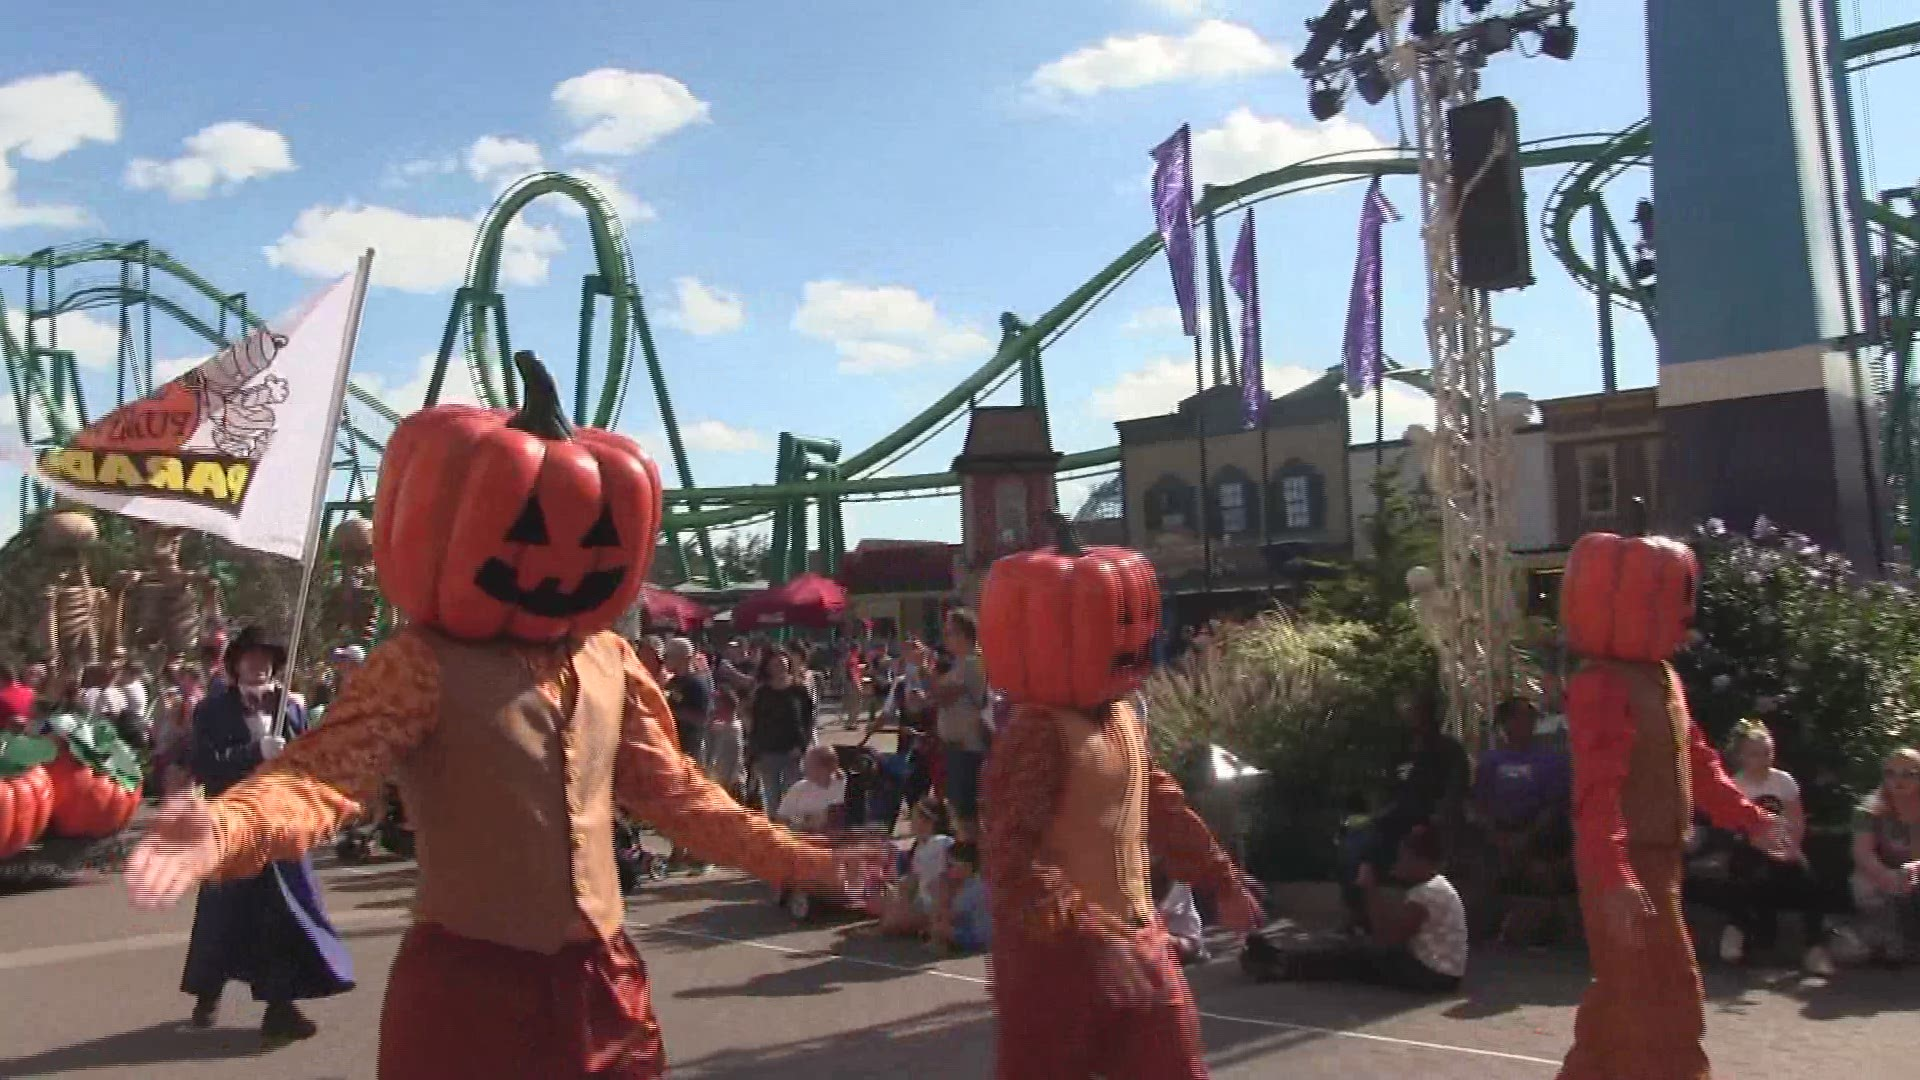 Halloween Events 2020 Toledo Ohio What is replacing HalloWeekends at Cedar Point? New event planned